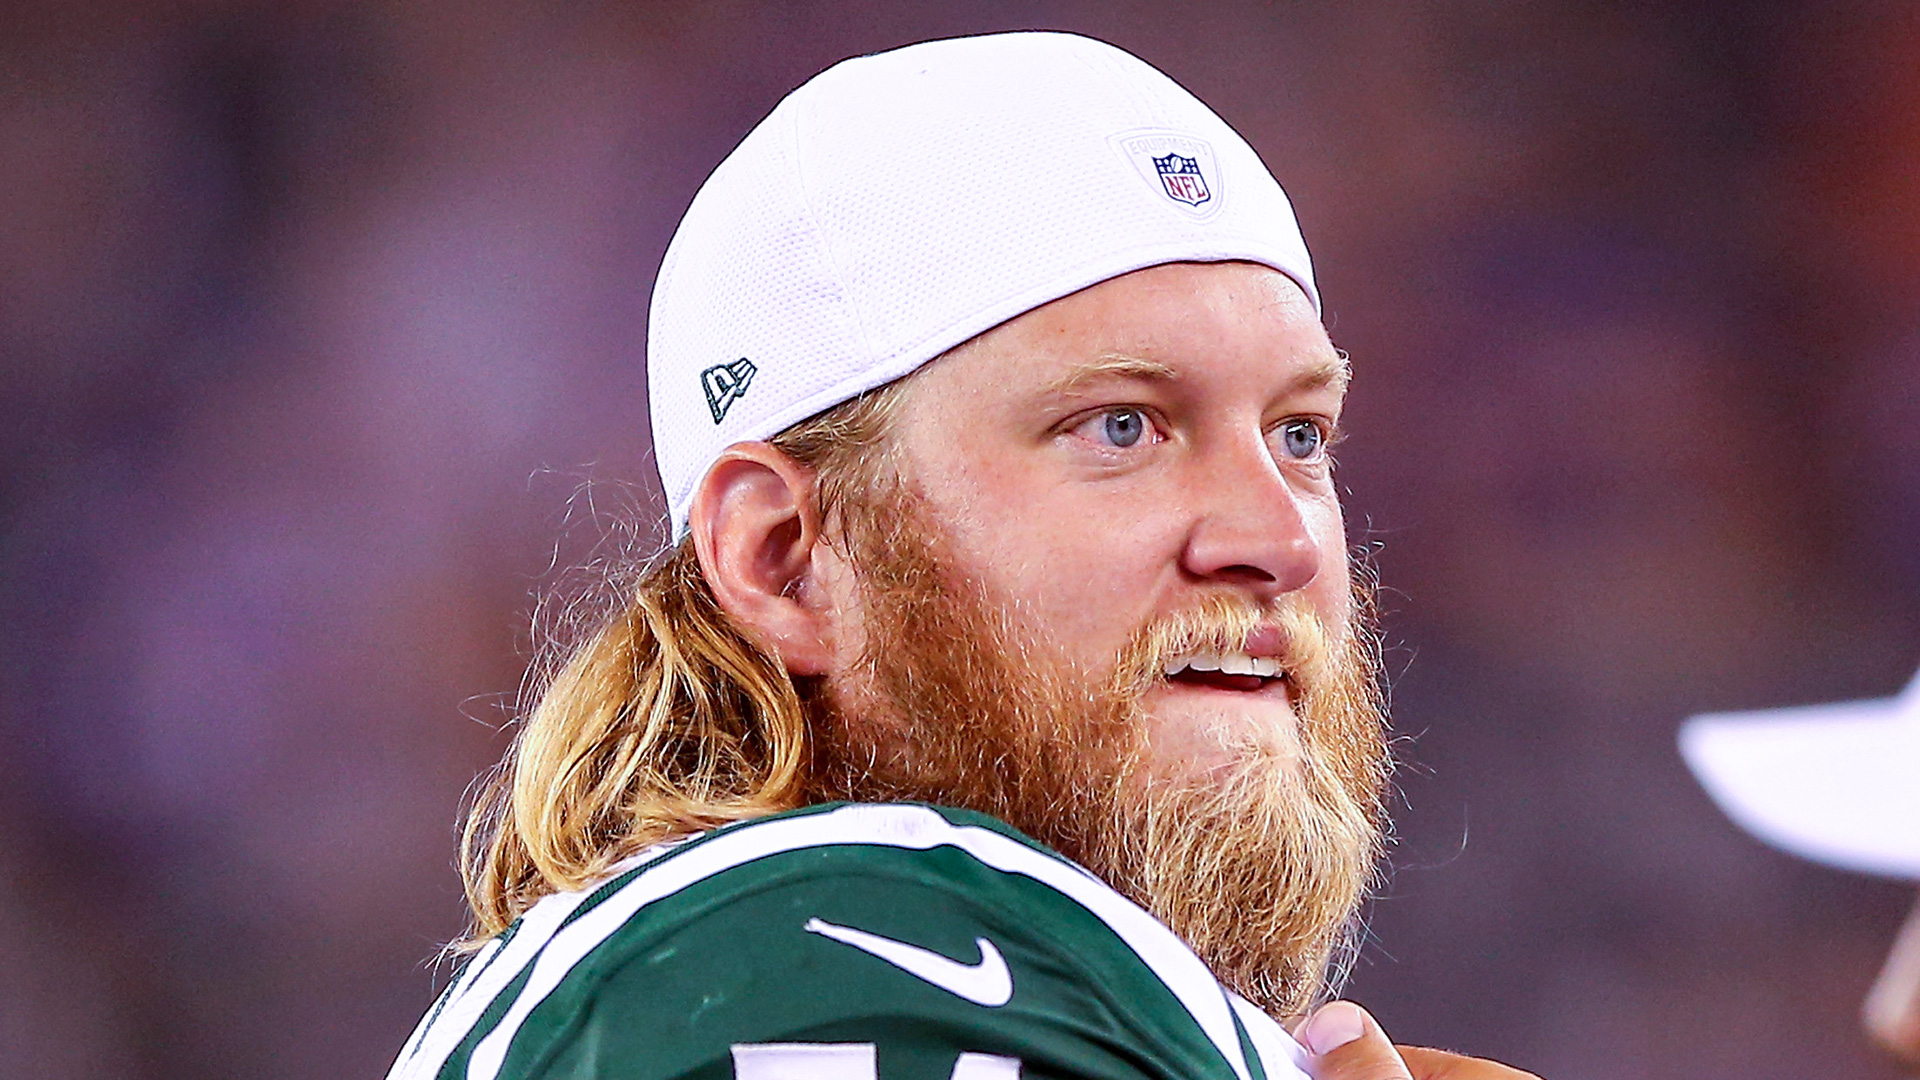 Jets Will Release Nick Mangold